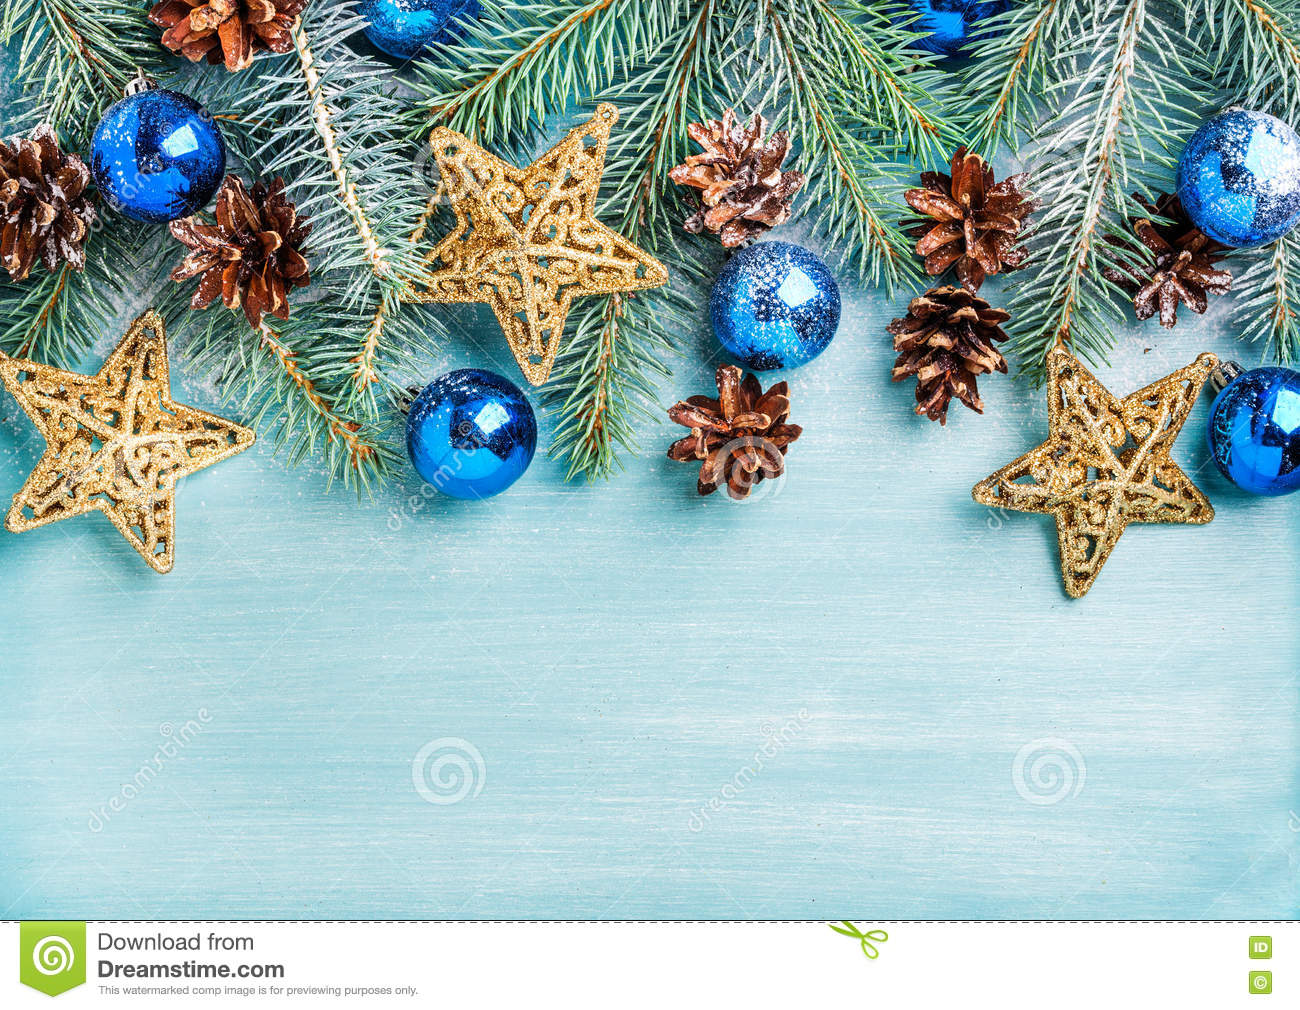 New Year or Christmas background: fir branches, blue glass balls, cones, golden stars over turquoise wooden backdrop